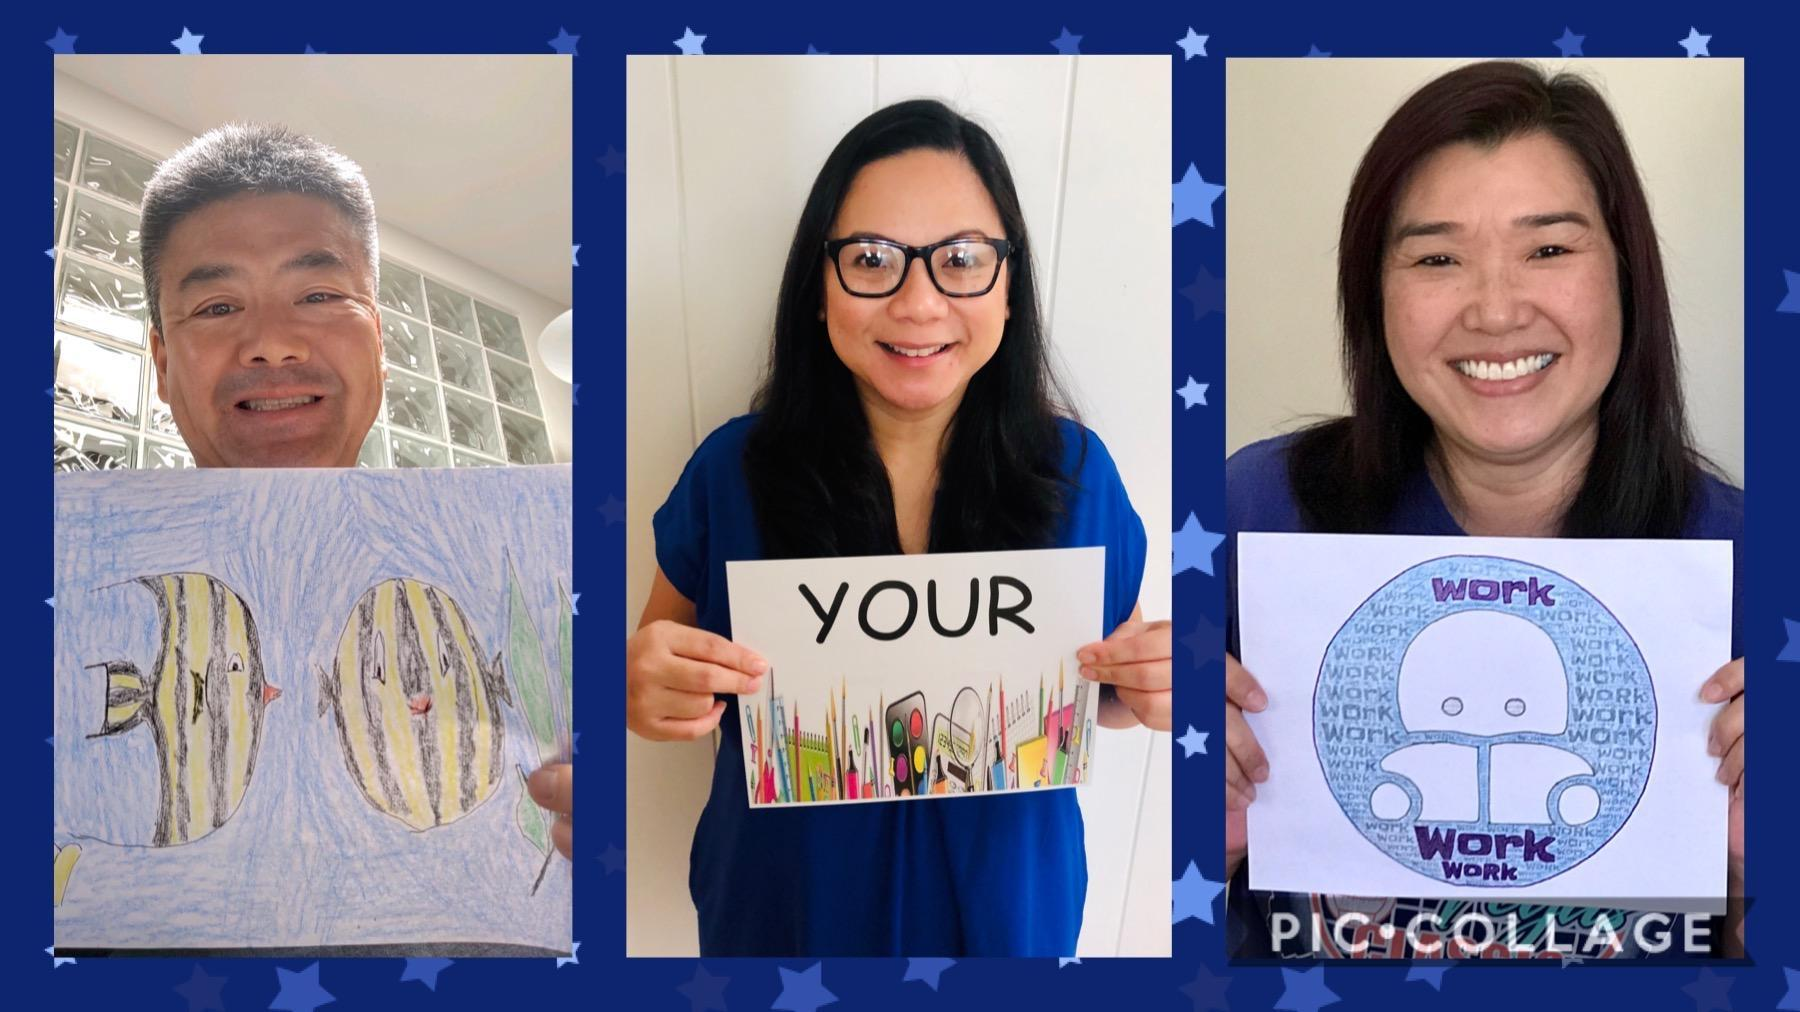 Photo collage of Gr.  teachers holding picture message to 'Do Your Work'